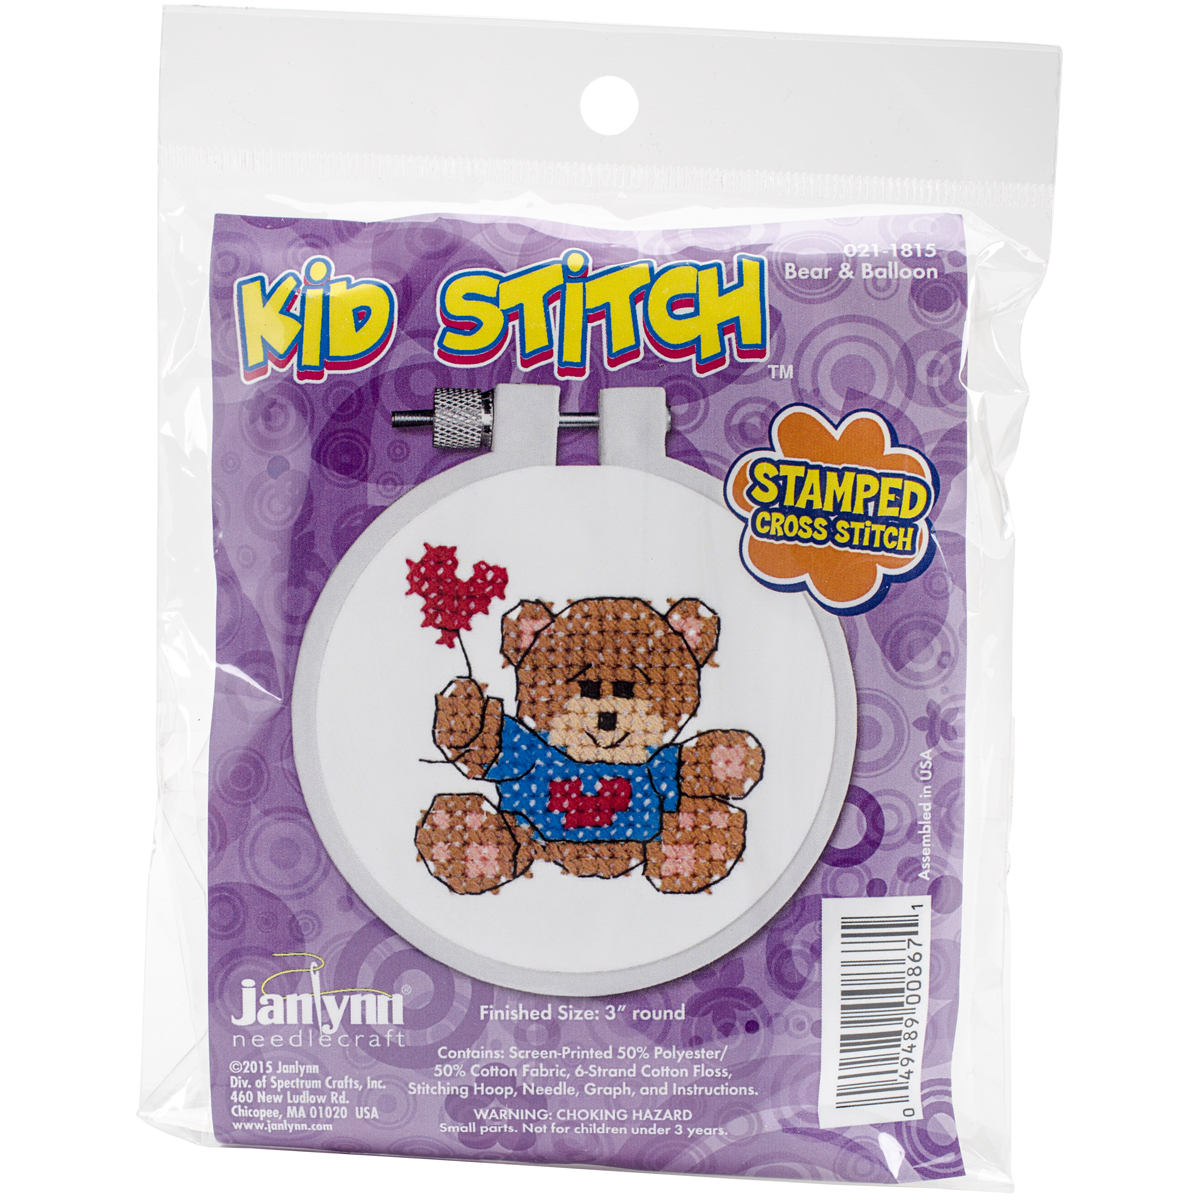 "Kid Stitch Bear & Balloon Stamped Cross Stitch Kit, 3"" Round"